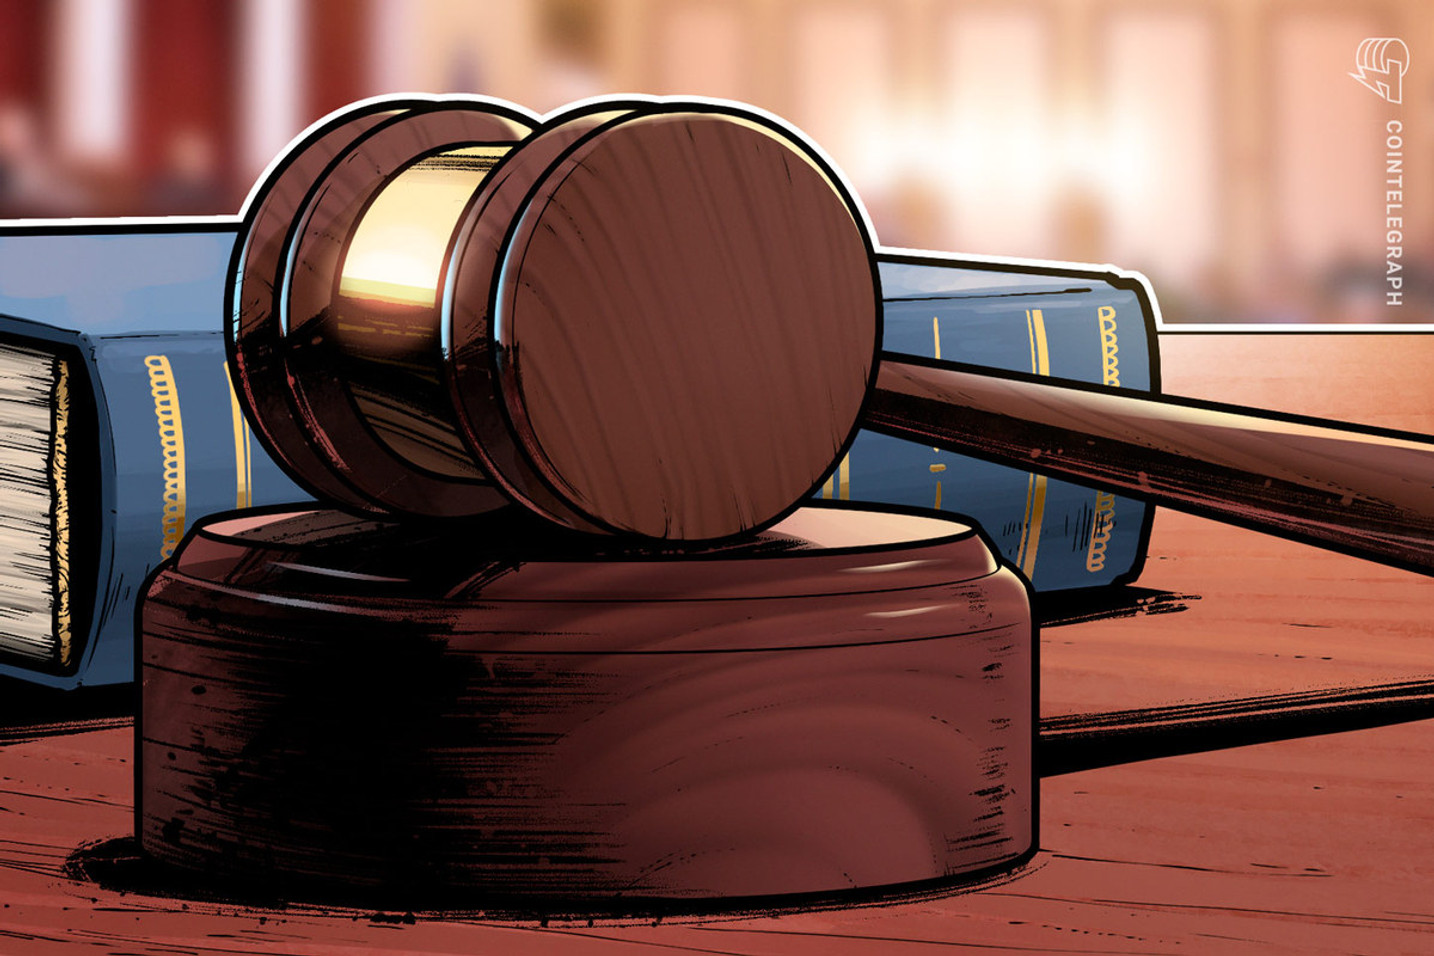 New York Judge Grants US Government Right to Intervene in $7M Bitcoin Fraud Case